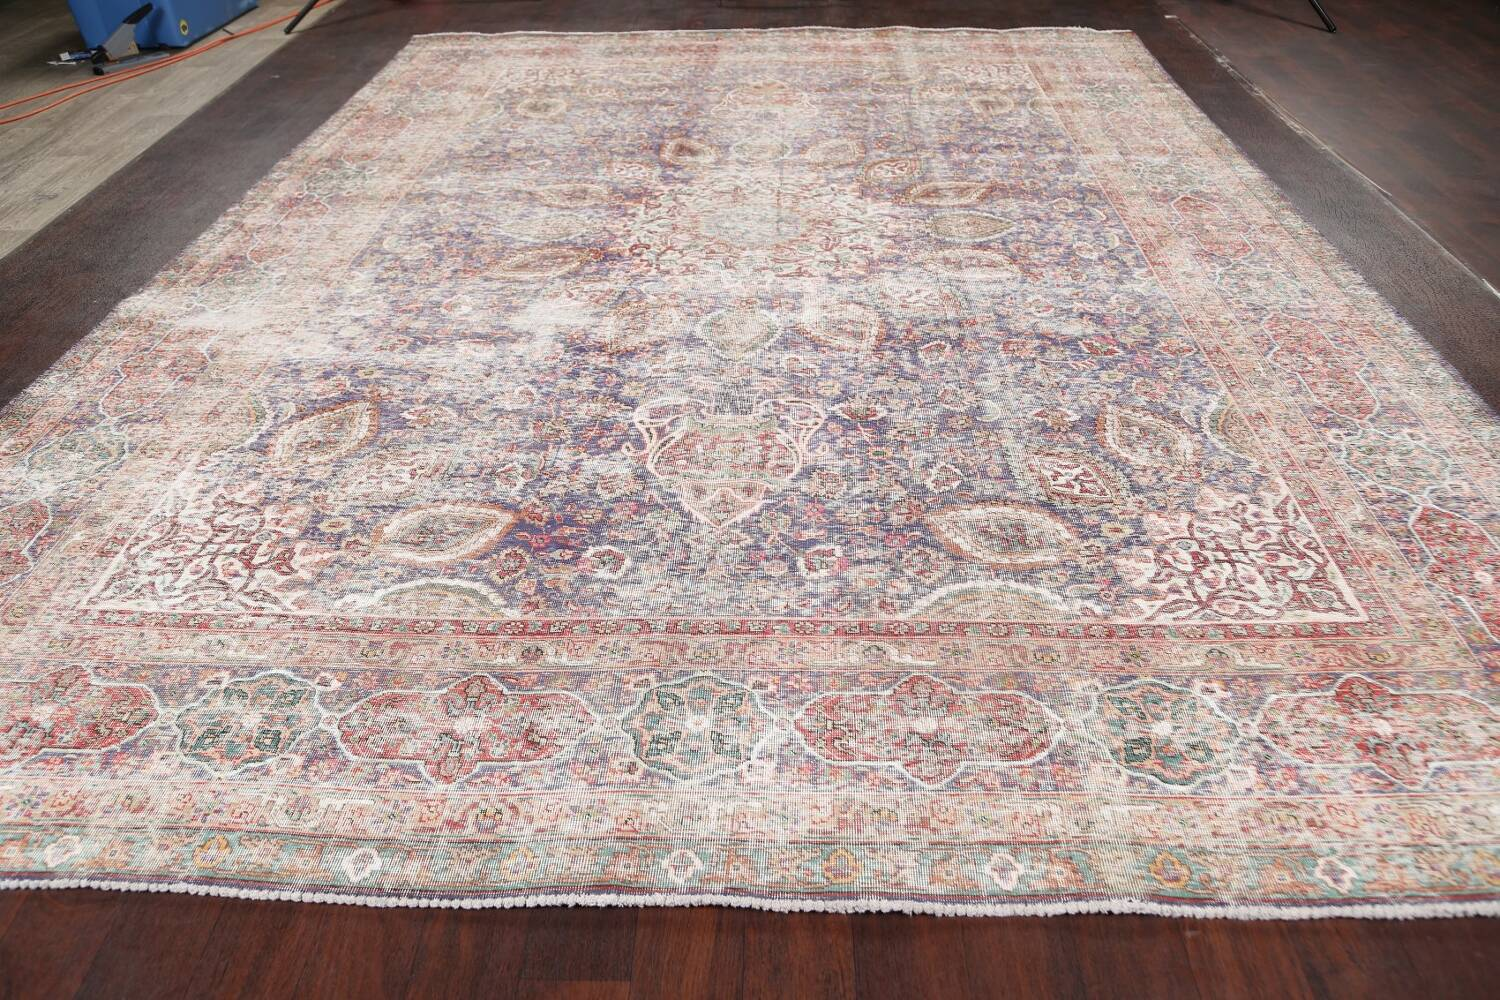 Antique Distressed Floral Tabriz Persian Area Rug 10x13 image 17